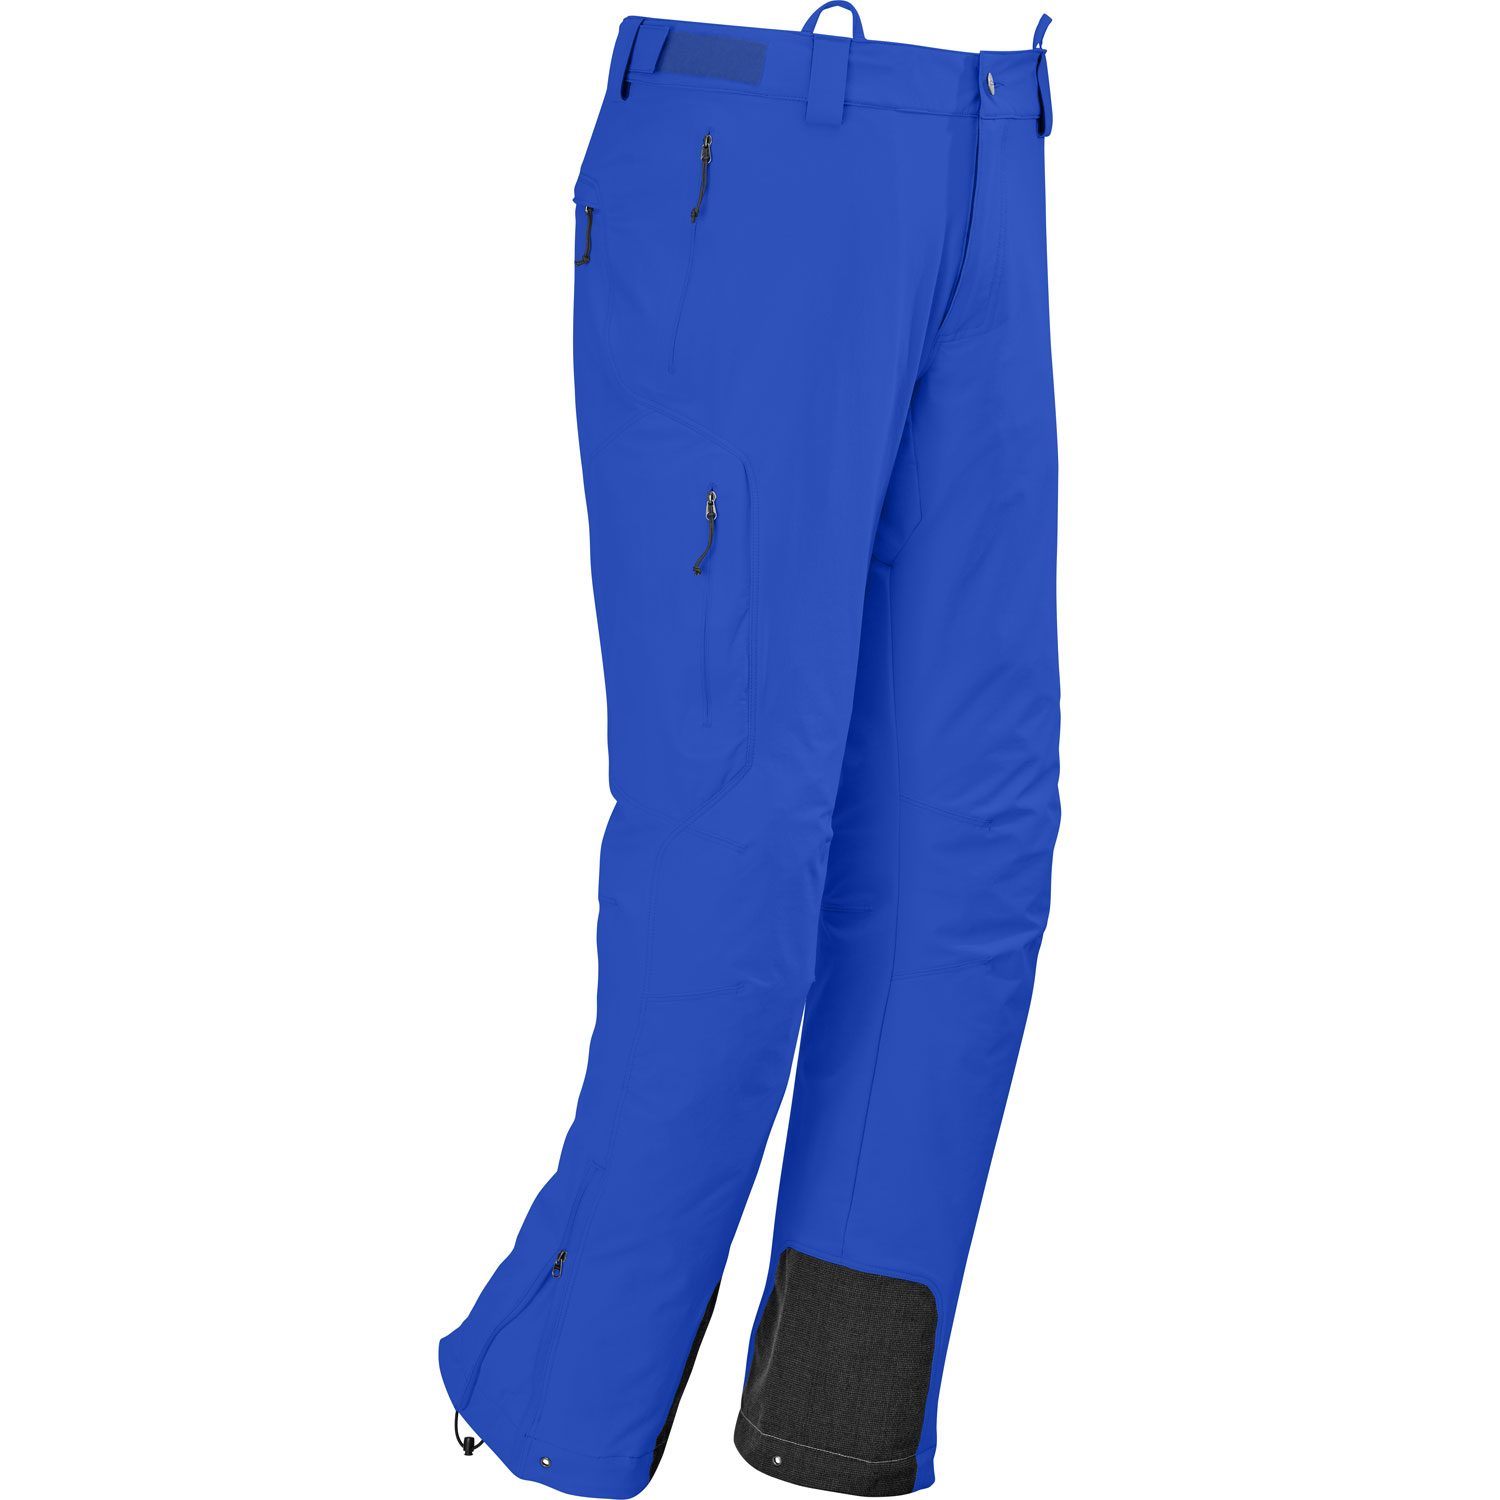 Ski Technical soft shell for cold, winter alpine conditions, the Outdoor Research Cirque Ski Pant is weather-resistant and breathable for high-energy climbing and ski touring.Key Features of the Outdoor Research Cirque Ski Pants: Durable, highly-breathable and wind resistant double-weave, stretch woven fabric; brushed nylon face/polyester backing Button and zipper fly with adjustable elastic tabs; belt loops Zippered hand pockets, right pocket on thigh, and back pocket Accepts accessory suspenders Gusseted crotch Articulated knees Reinforced ankle scuff guards Zippered cuff closures with gusset and drawcord Grommets for instep lace; boot lace clip - $97.95